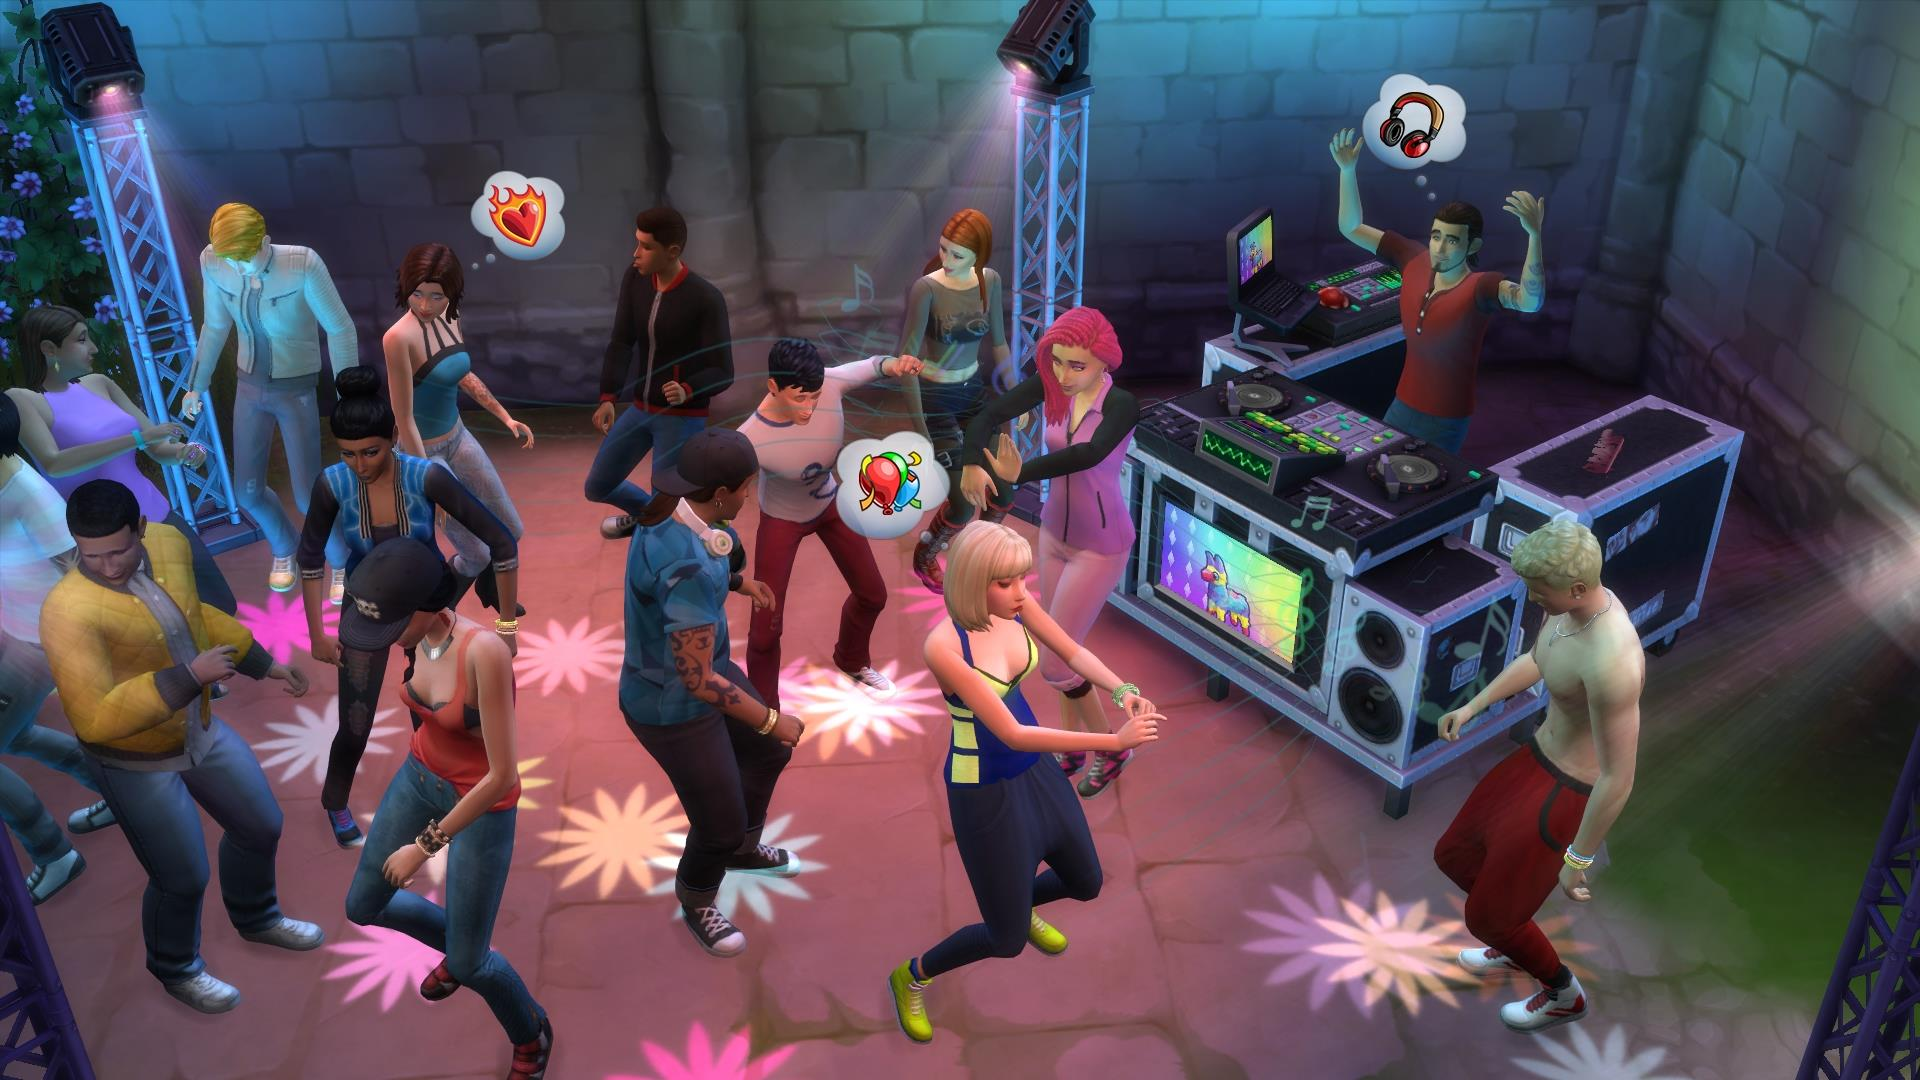 Gamescom 2015 The Sims 4 Get Together Expansion